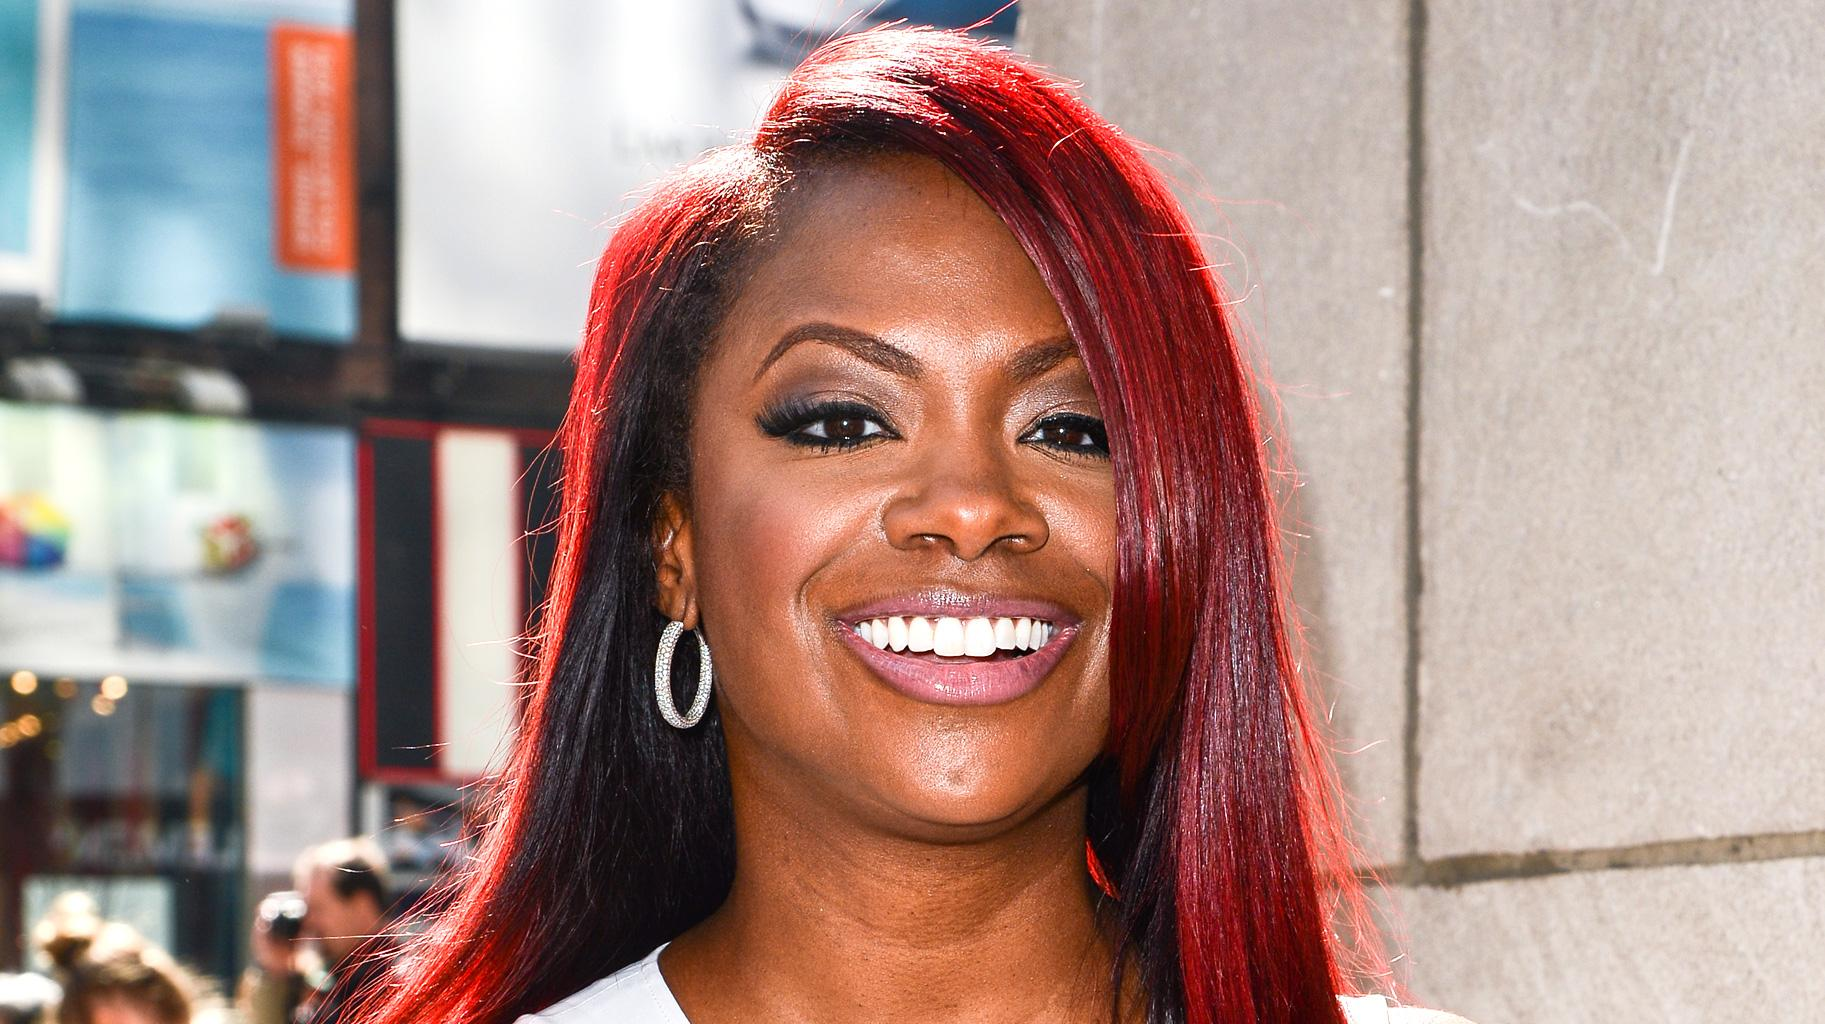 Kandi Burruss' Latest Photo With Riley Burruss Next To A Graphic Representation Of Snoop Dogg Has Fans Saying She Should Collab With The Rapper